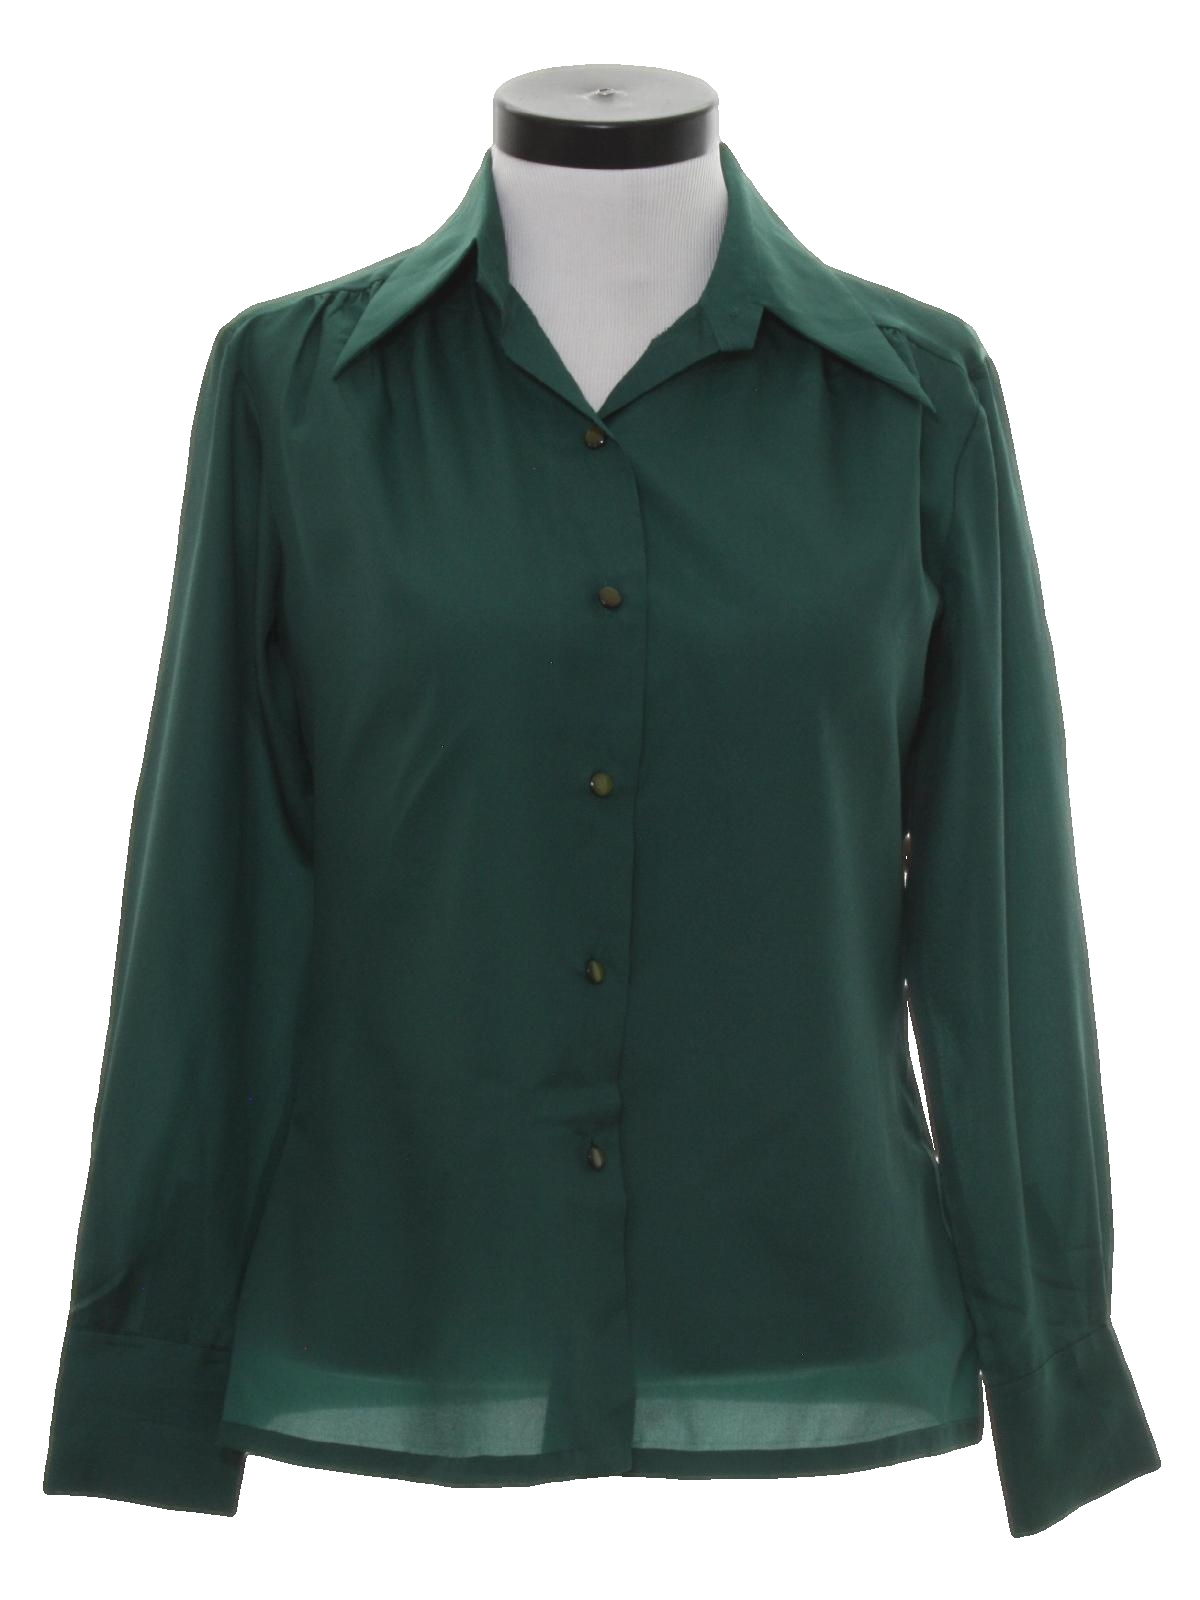 Retro 70s shirt k 70s k mart womens hunter green for Solid color button up shirts